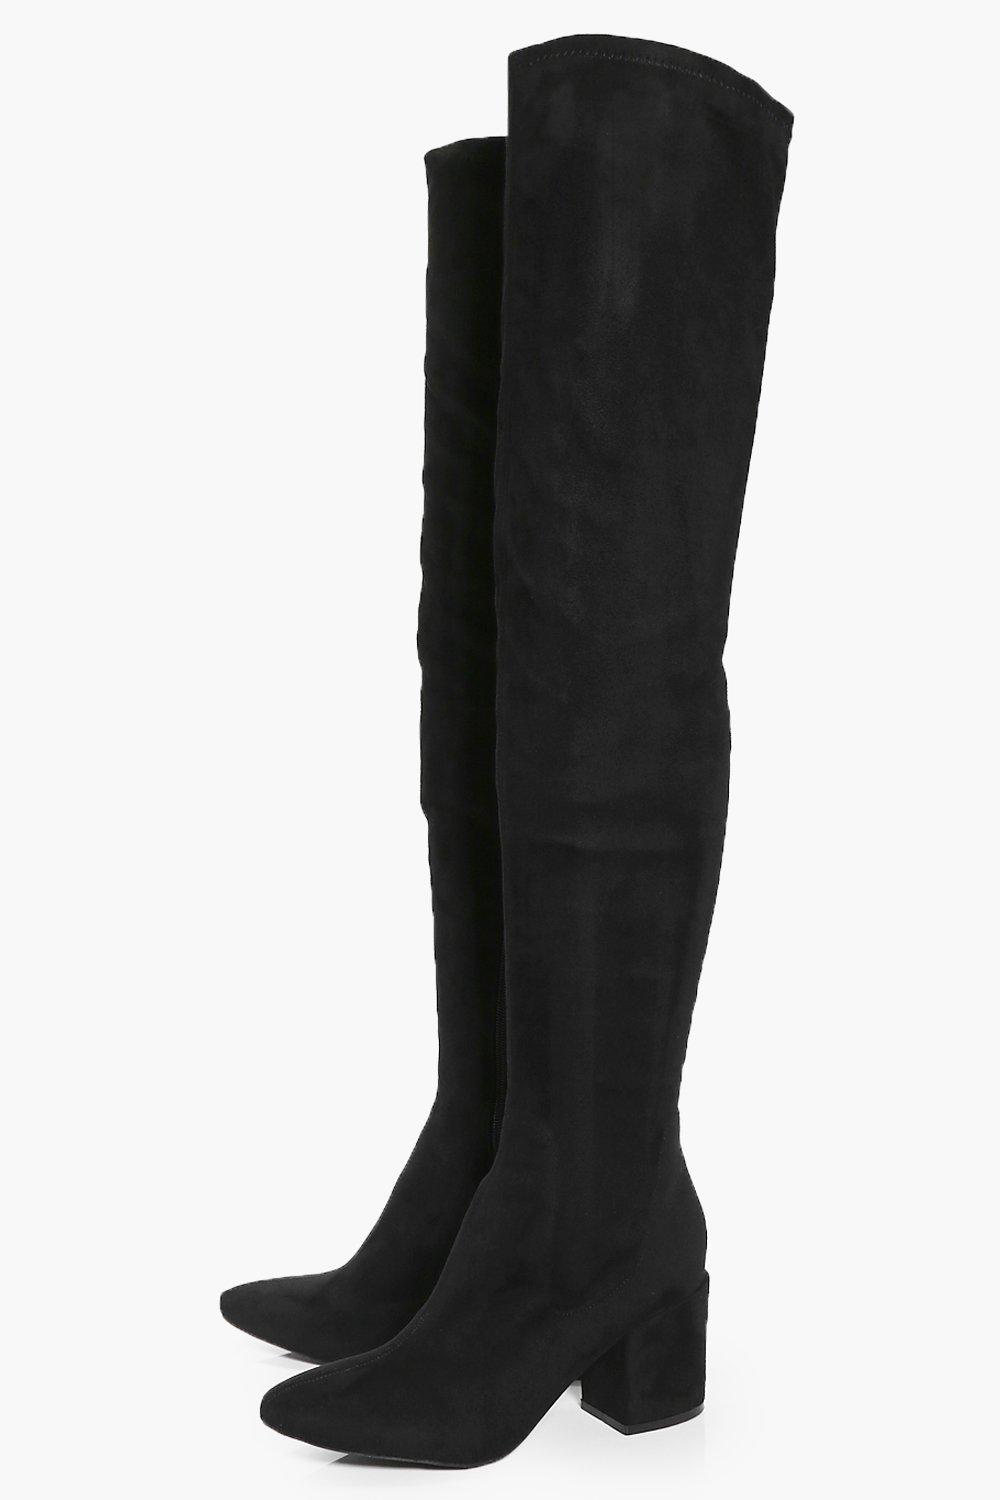 Libby Block Heel Thigh High Boot at boohoo.com